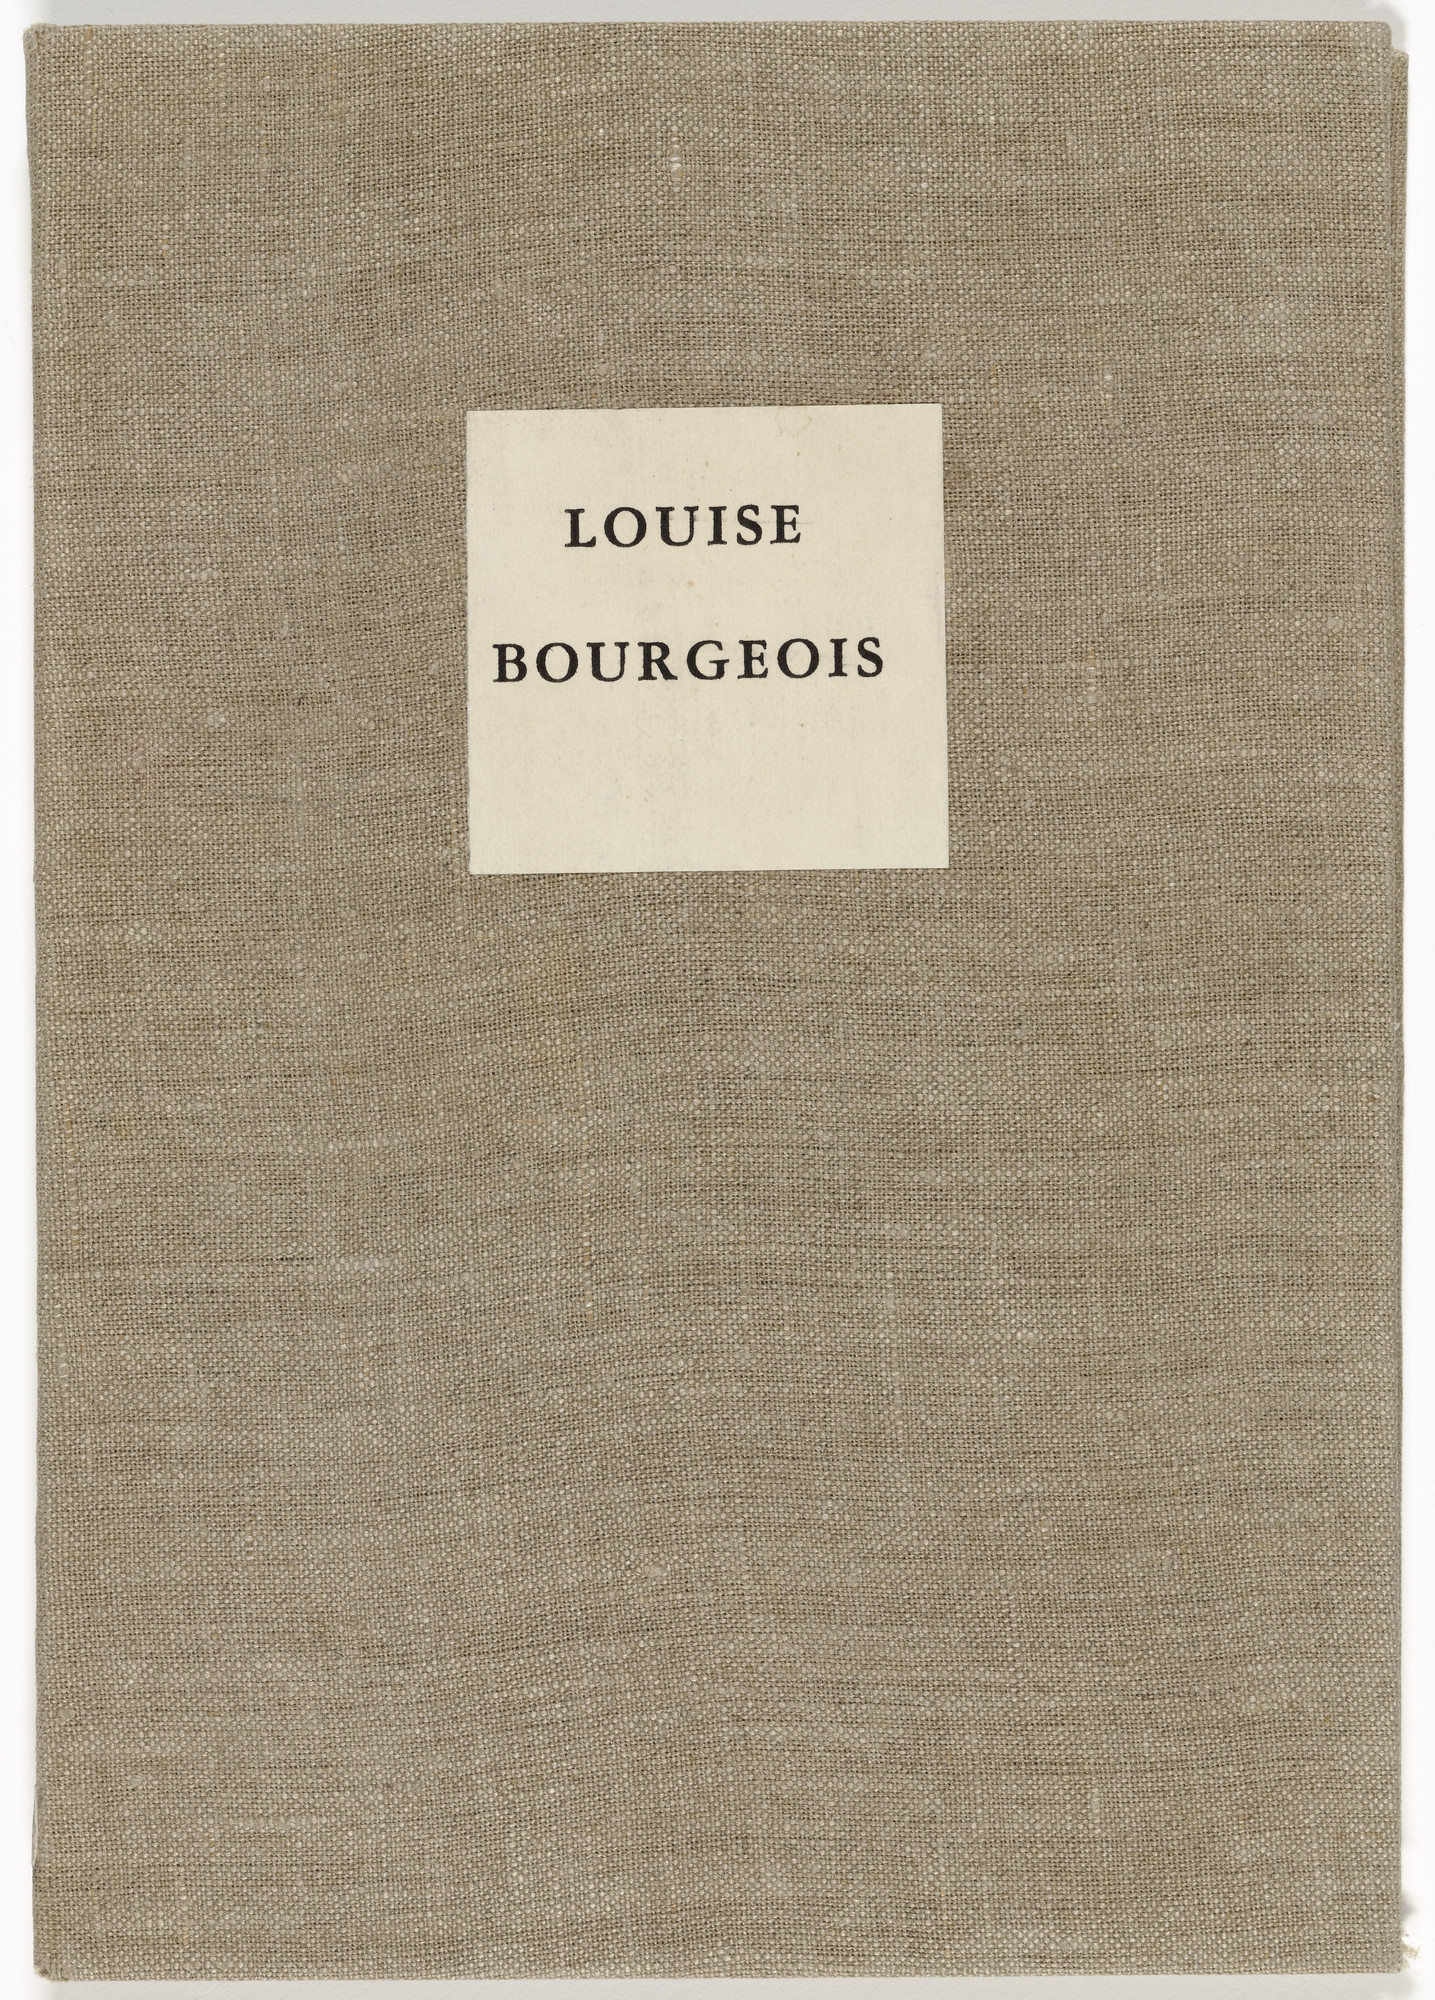 Louise Bourgeois. He Disappeared into Complete Silence, first edition, example 1. 1947